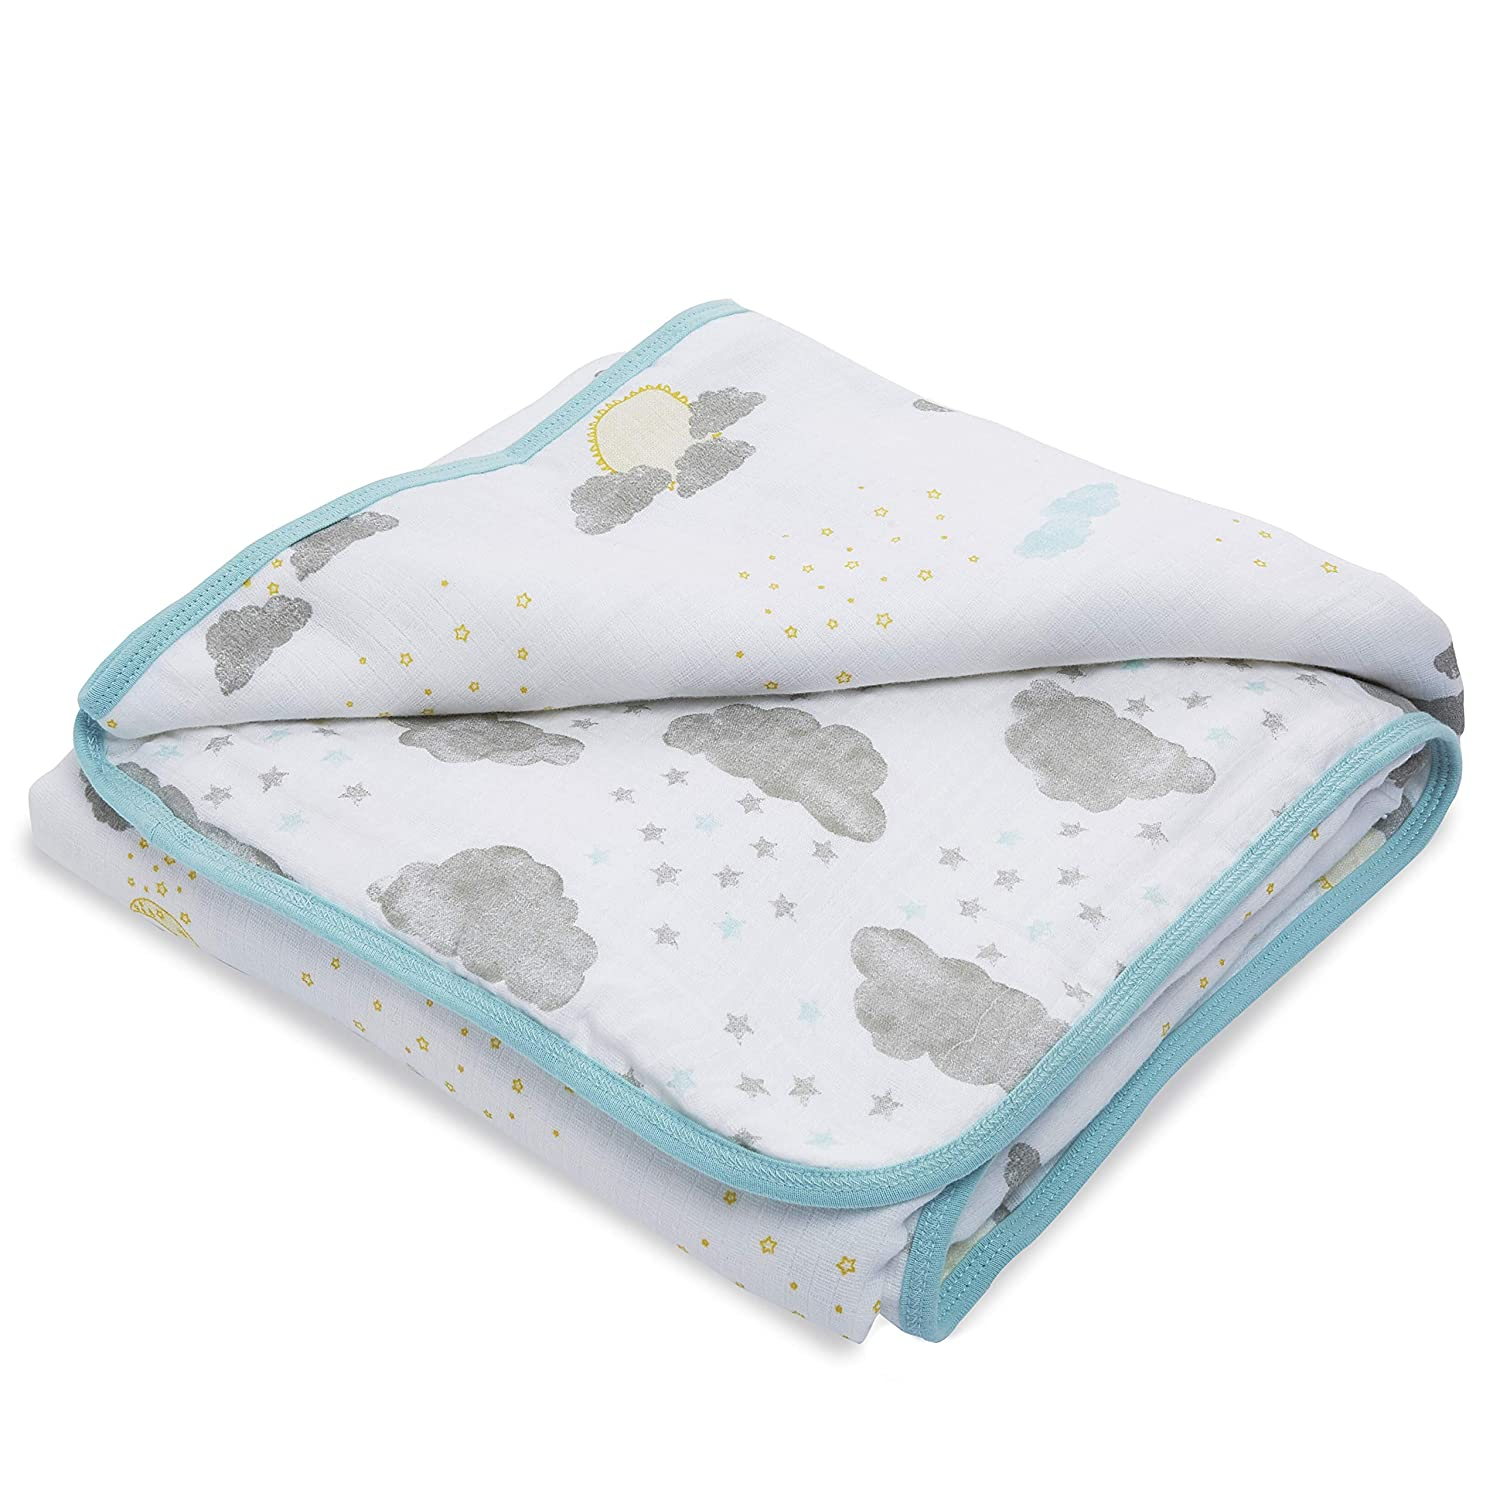 Aden by aden + anais Classic Dream Blanket, Partly Sunny - Night and Day